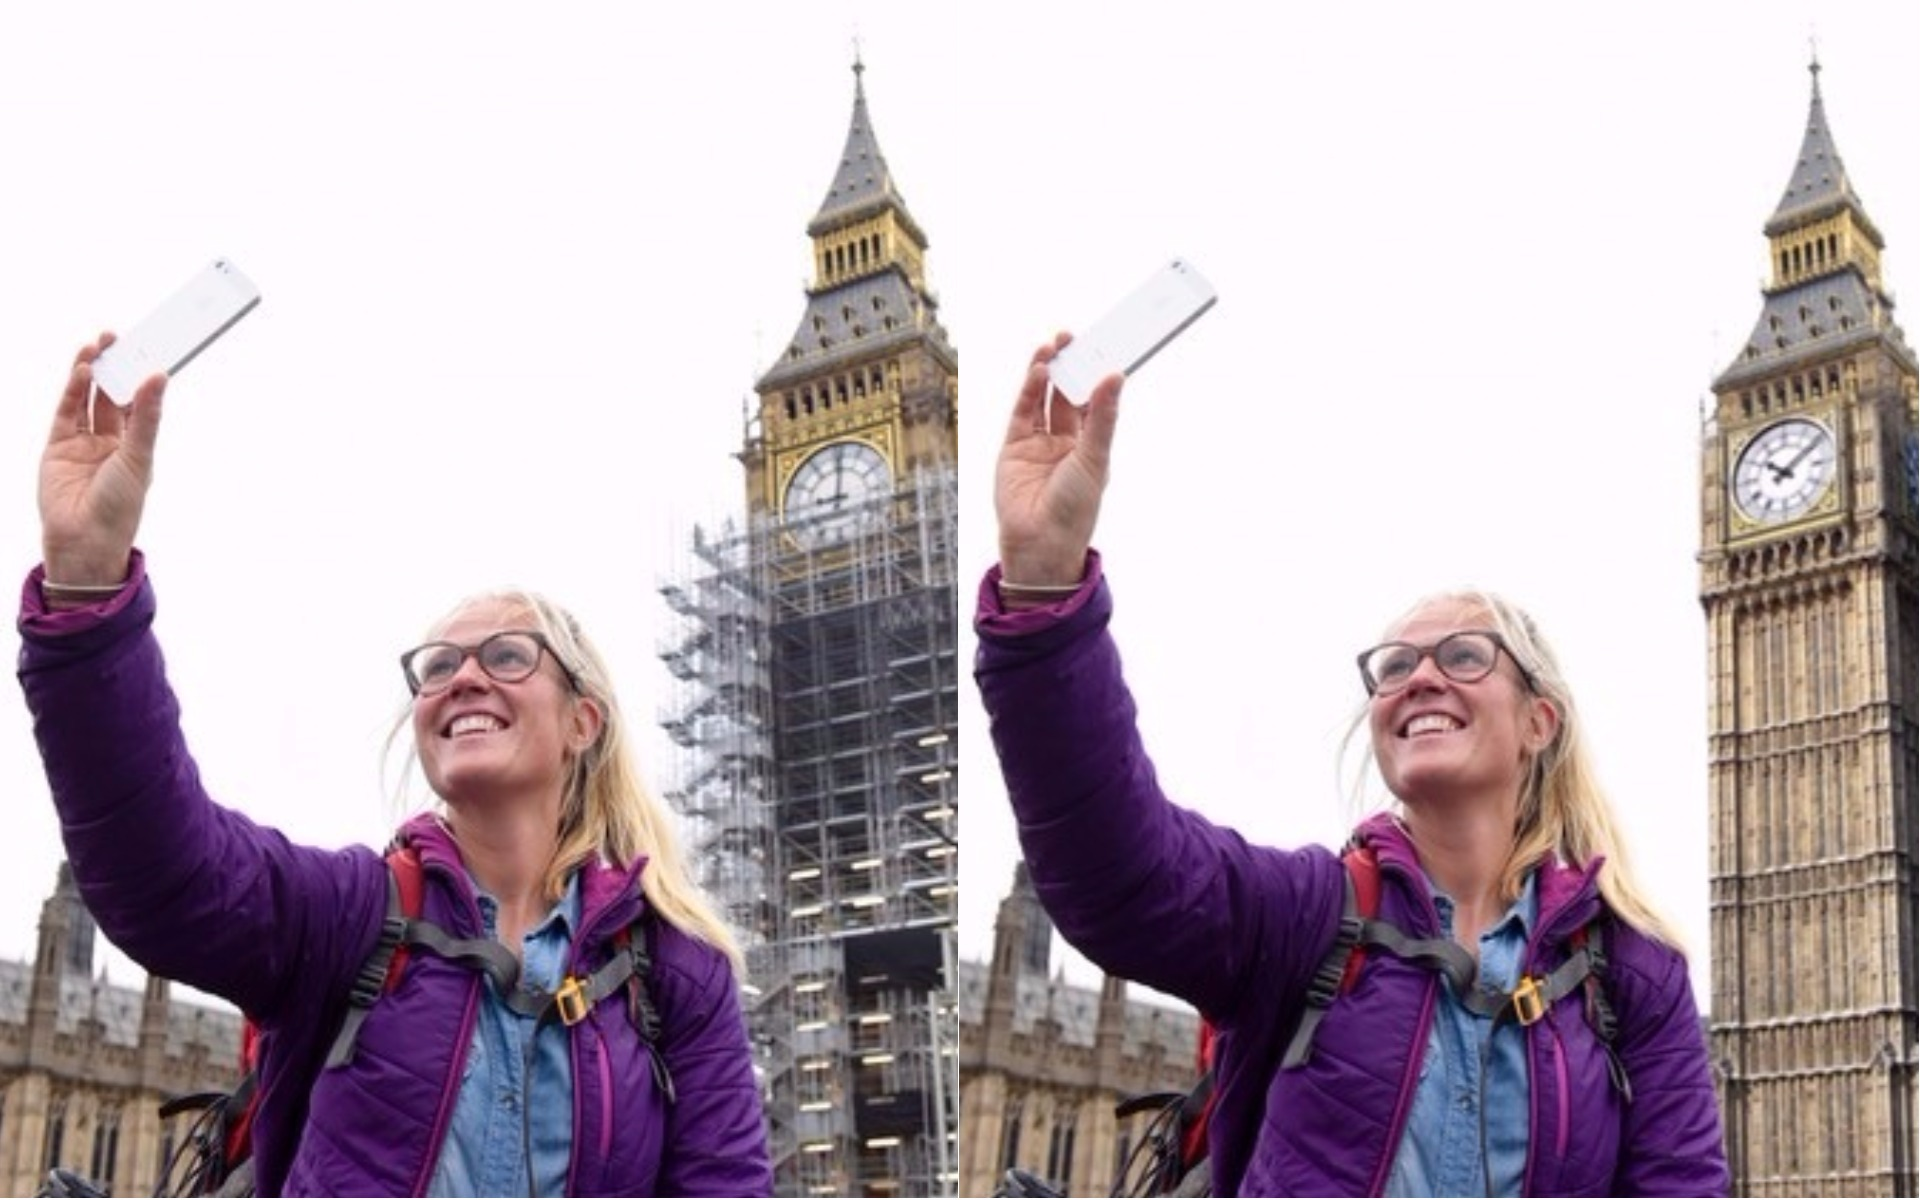 With and without the Big Ben scaffolding